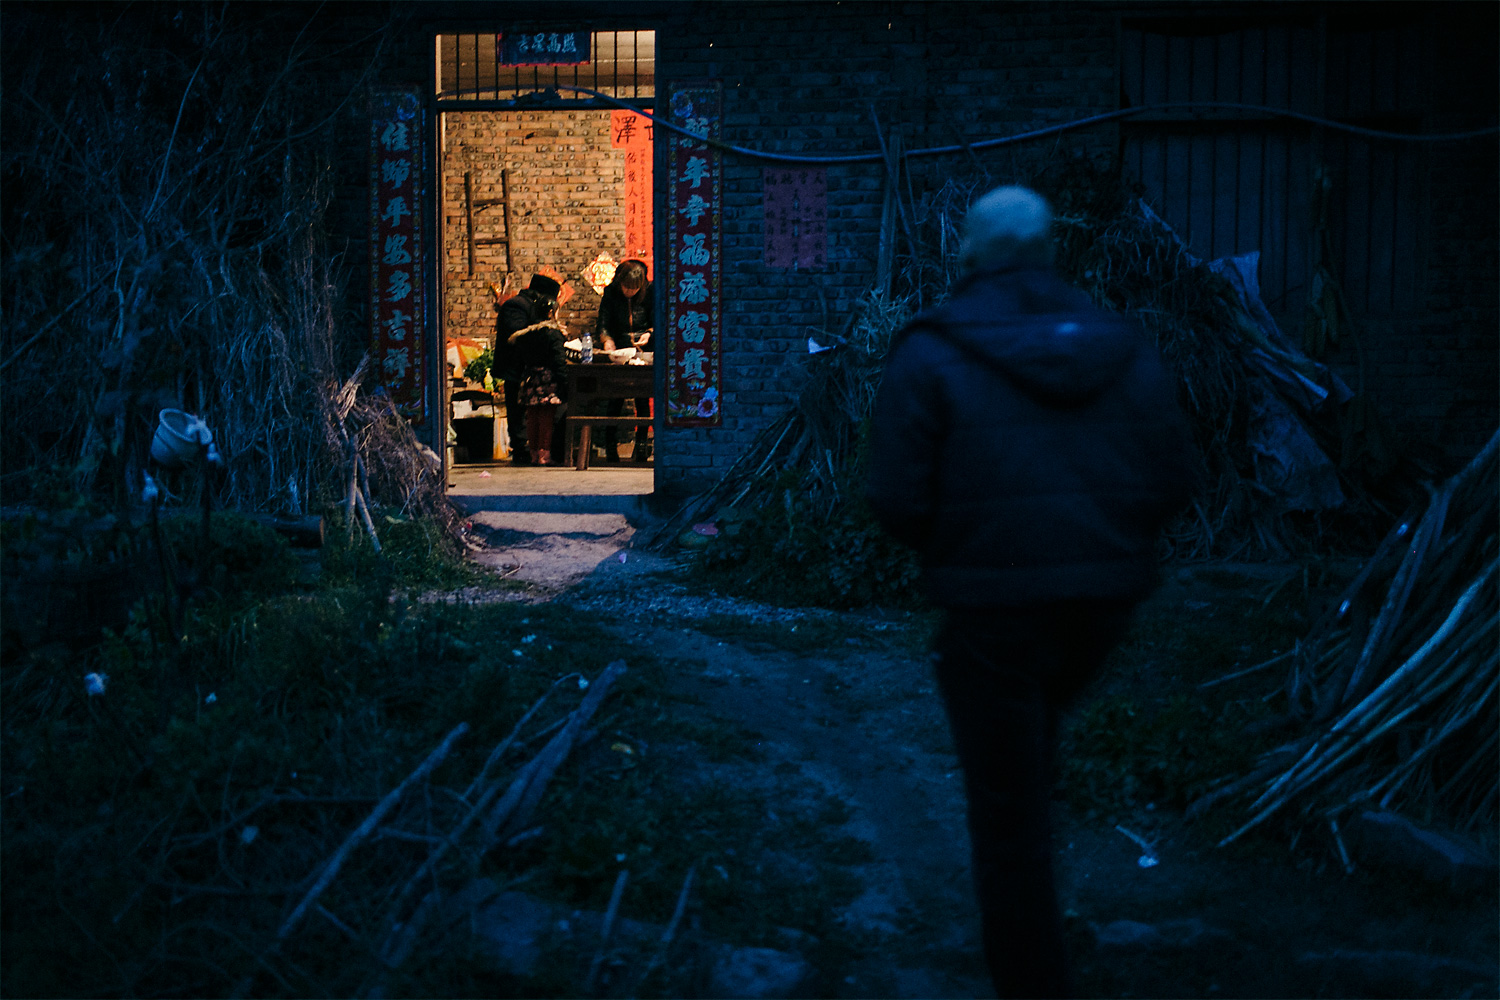 Li Mingjin walks toward his home as his 68-year-old mother and his wife prepare dinner, in Longjing village, March 5, 2015. According to Mingjin, he and his wife told his mother that his disease was not serious and could be easily treated. They wanted to prevent her from worrying too much.